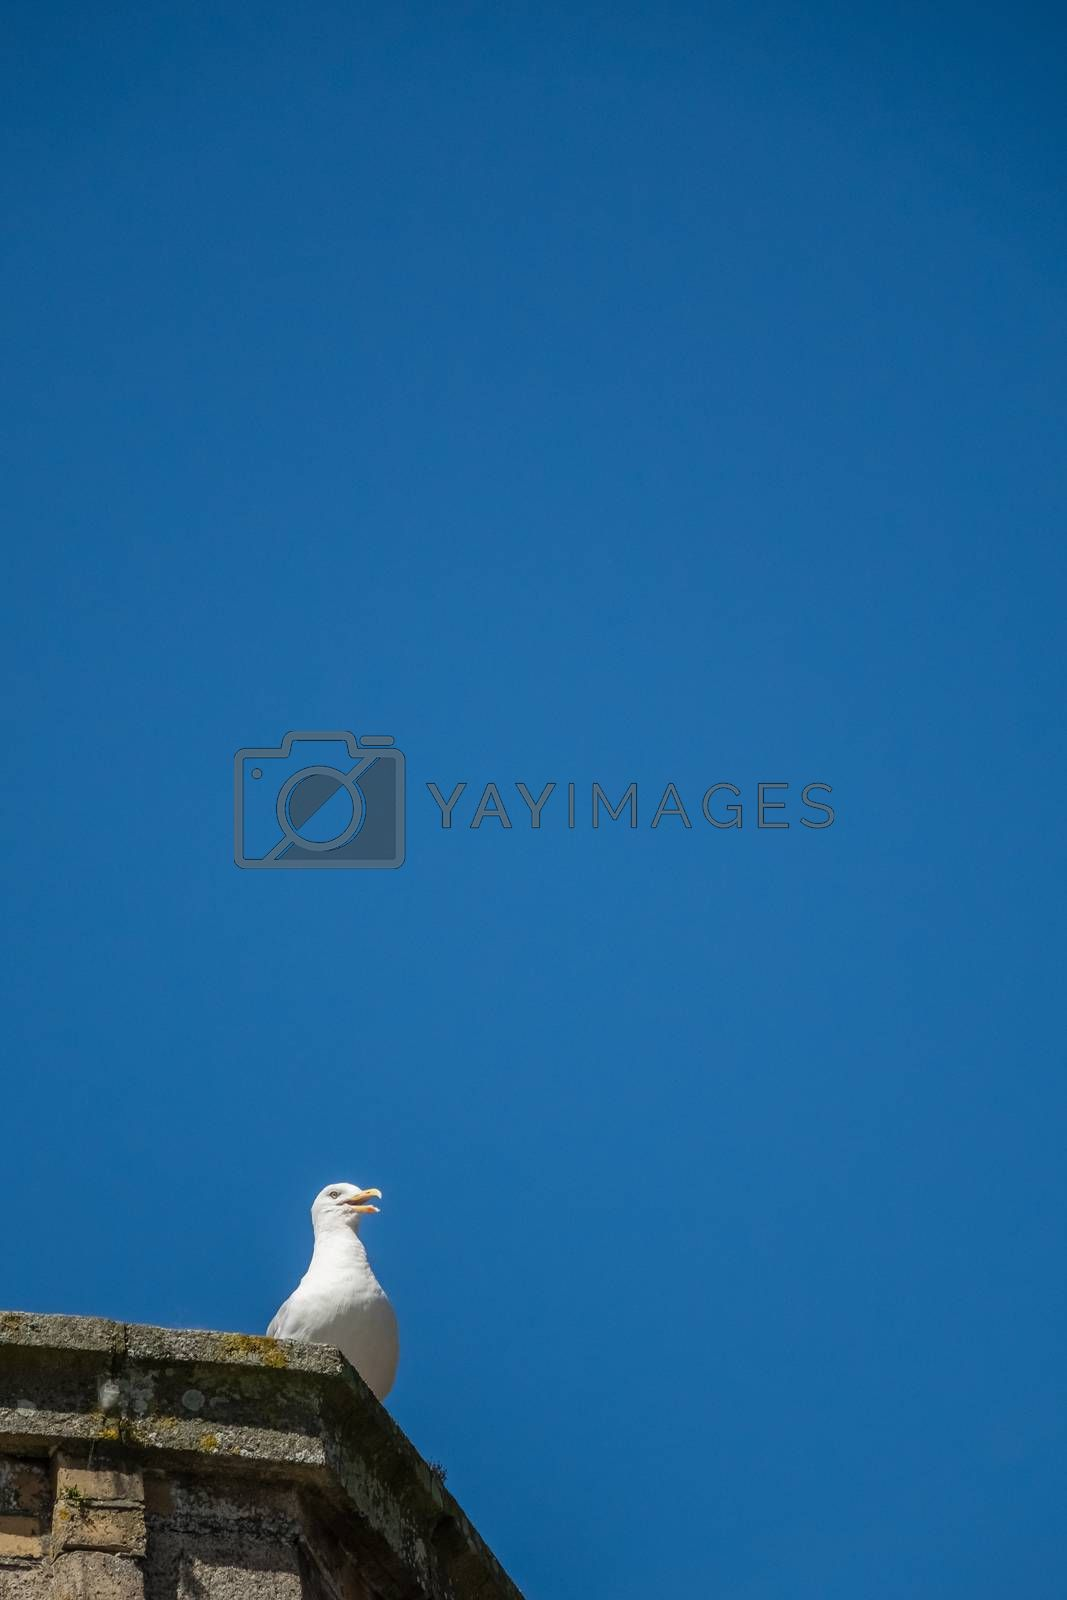 Seagull sitting on a roof of a building with blue sky in the background